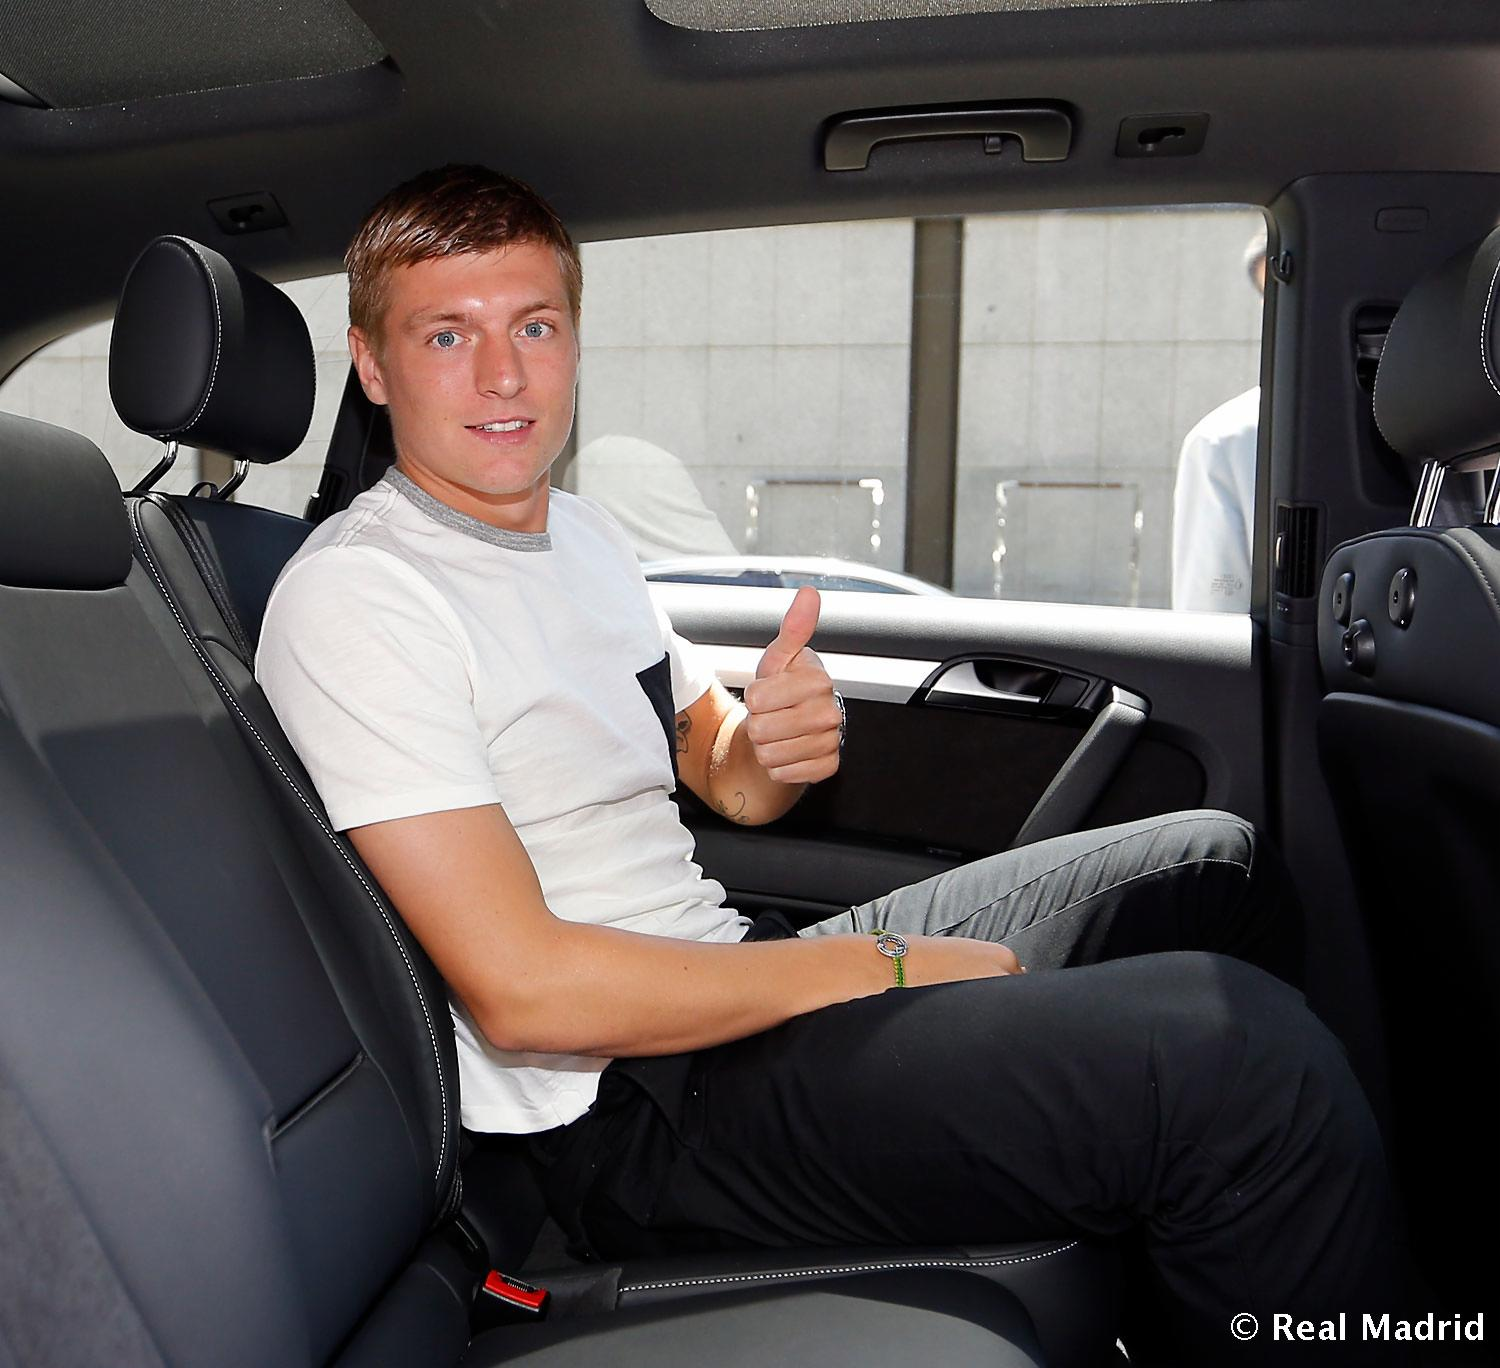 Real Madrid - Toni Kroos, en la ciudad Real Madrid - 17-07-2014